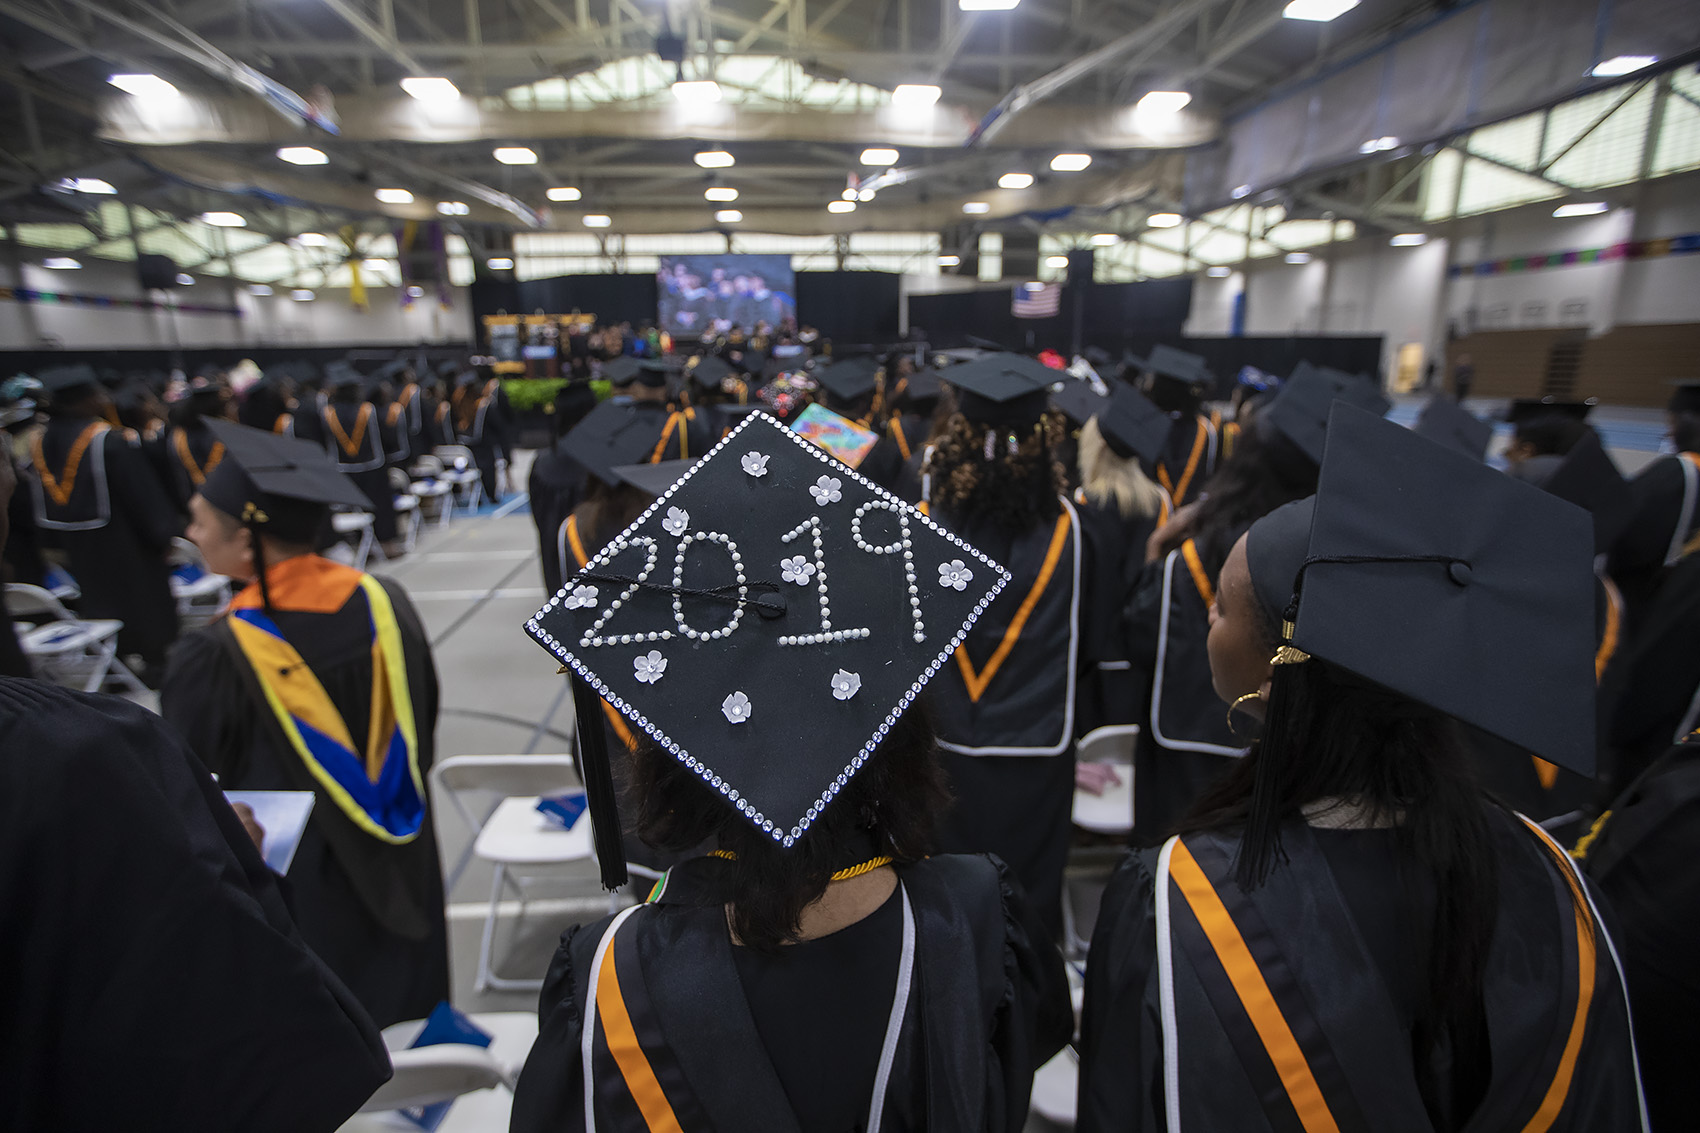 Graduates of Roxbury Community College stand at their seats during the commencement at Reggie Lewis Arena. (Jesse Costa/WBUR)